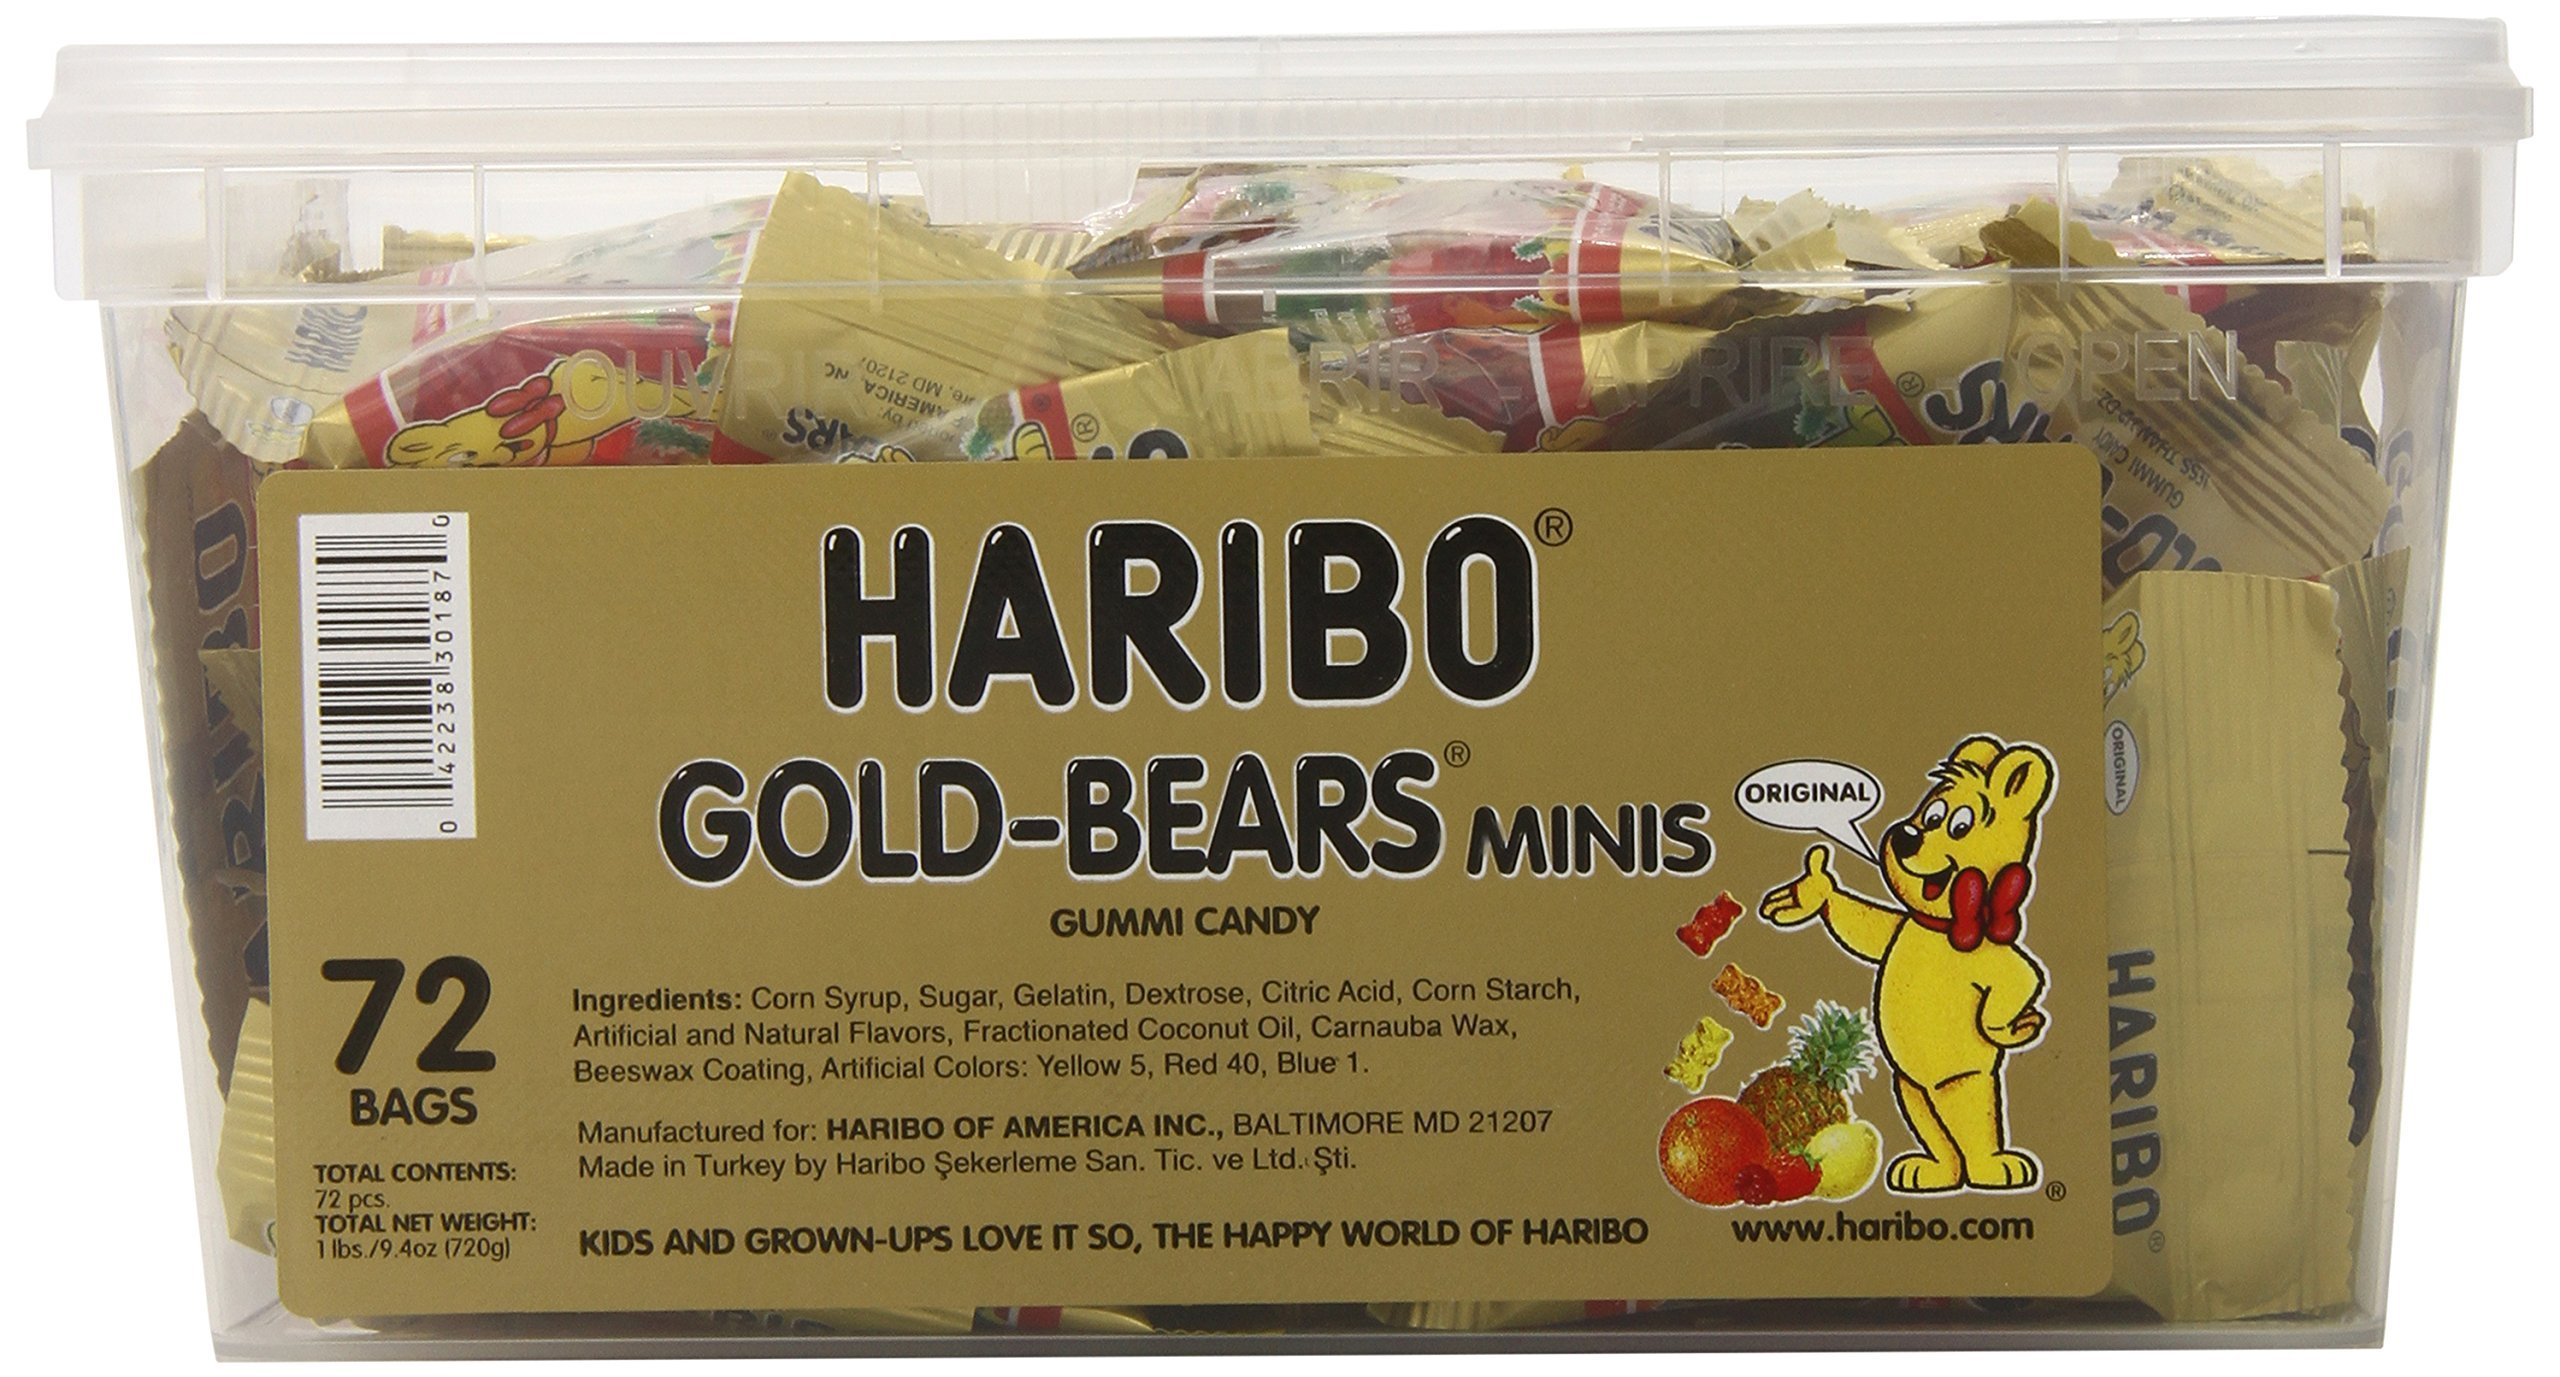 Haribo Goldbears Minis, 72-Count, 1 Pound 9.4 oz  Original Bears in mini bags by Haribo (Image #1)